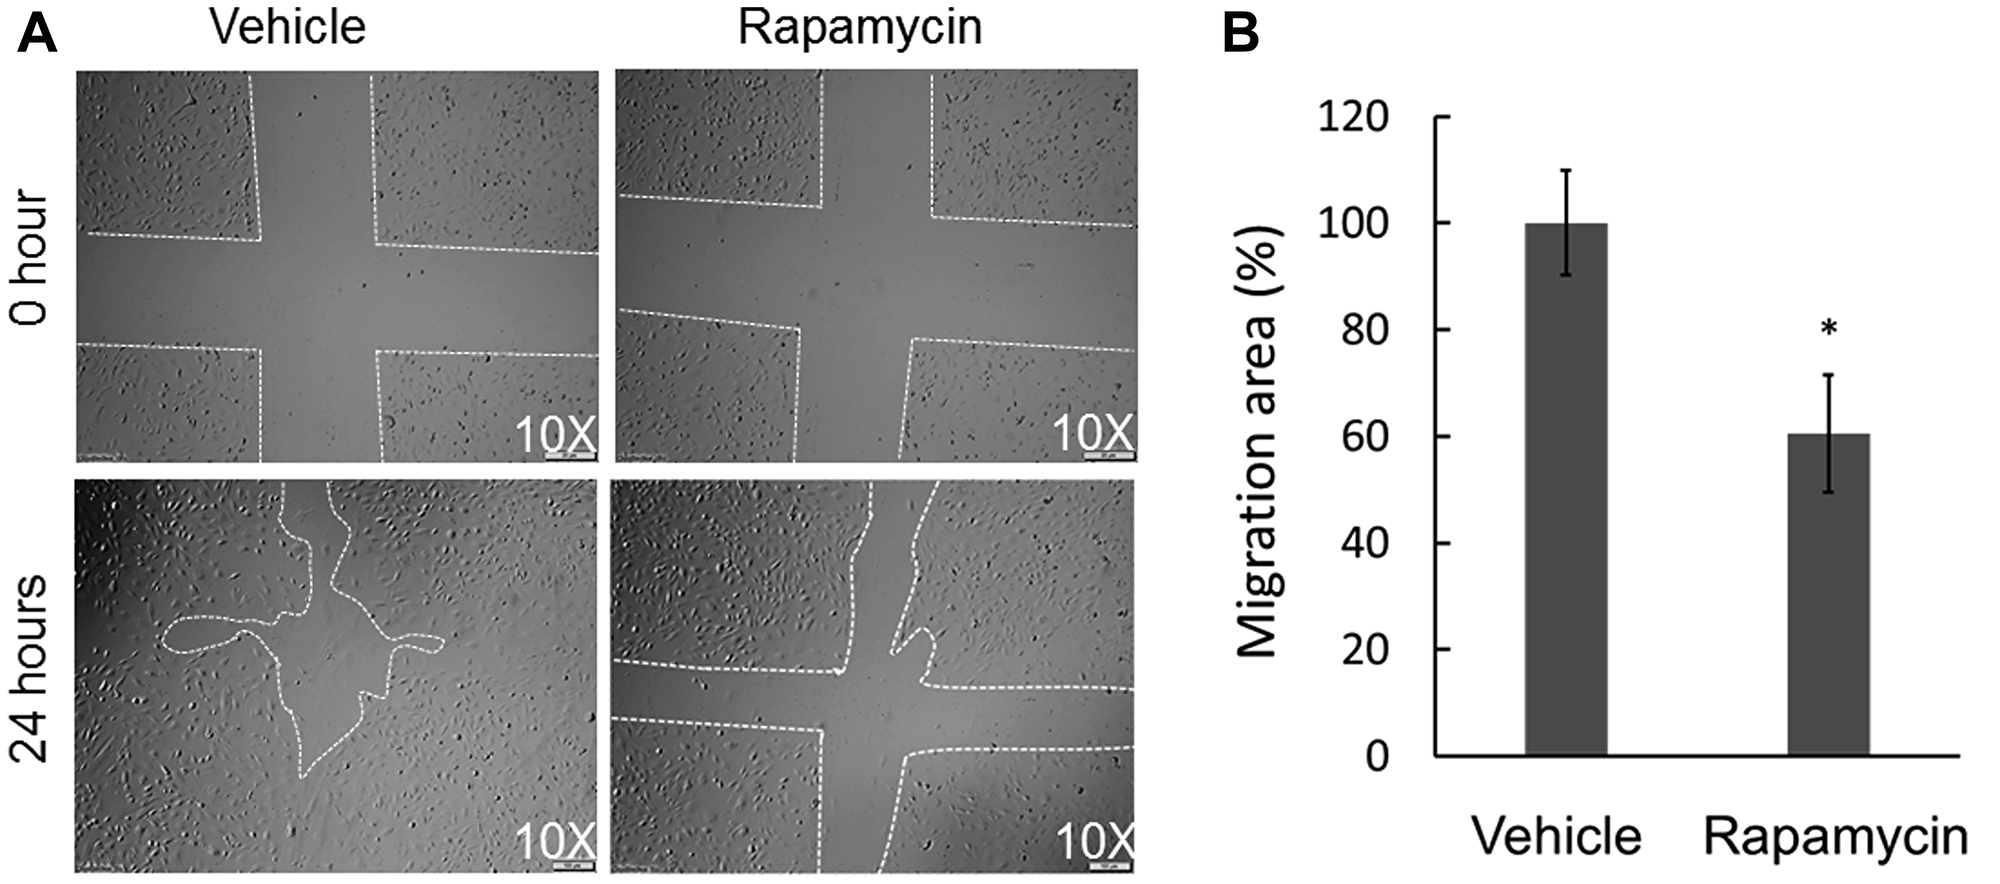 Effect of rapamycin on the in vitro wound healing ability of COS-33 cells.